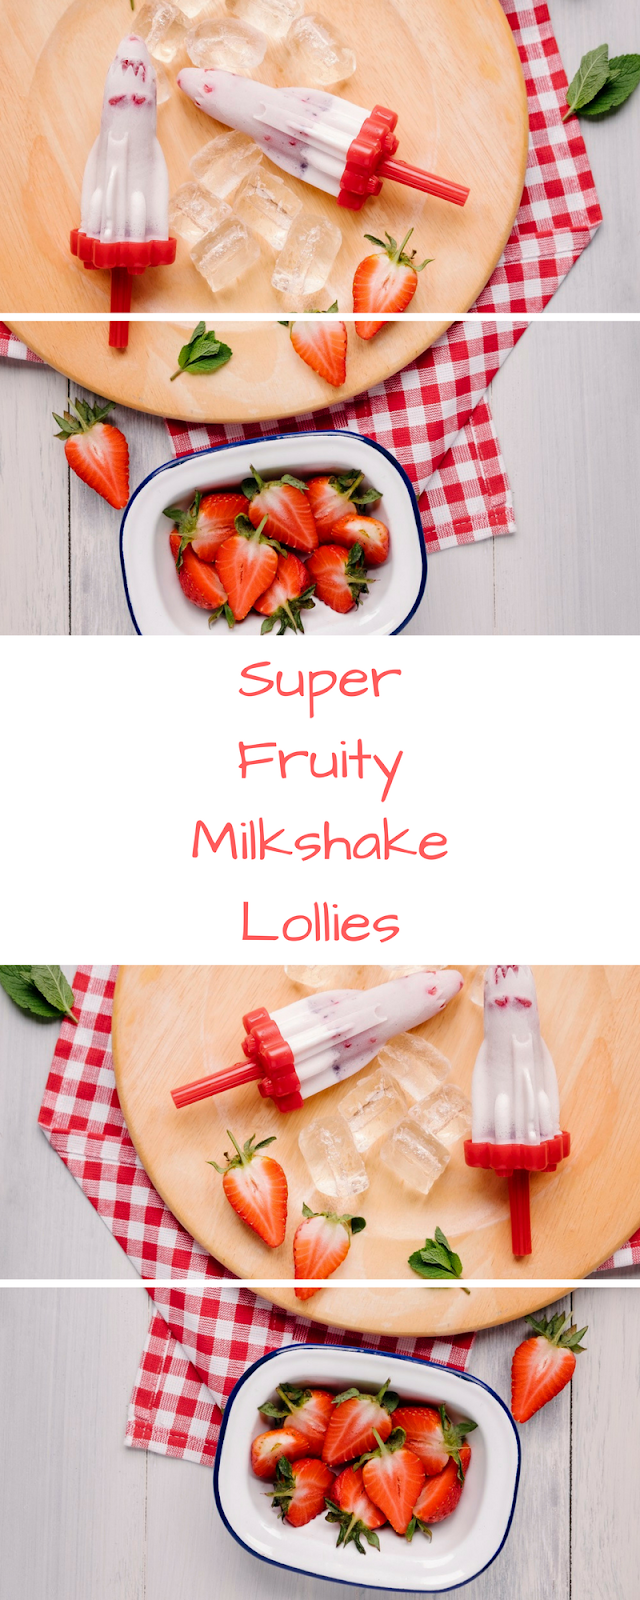 Super Fruity Milkshake Lollies